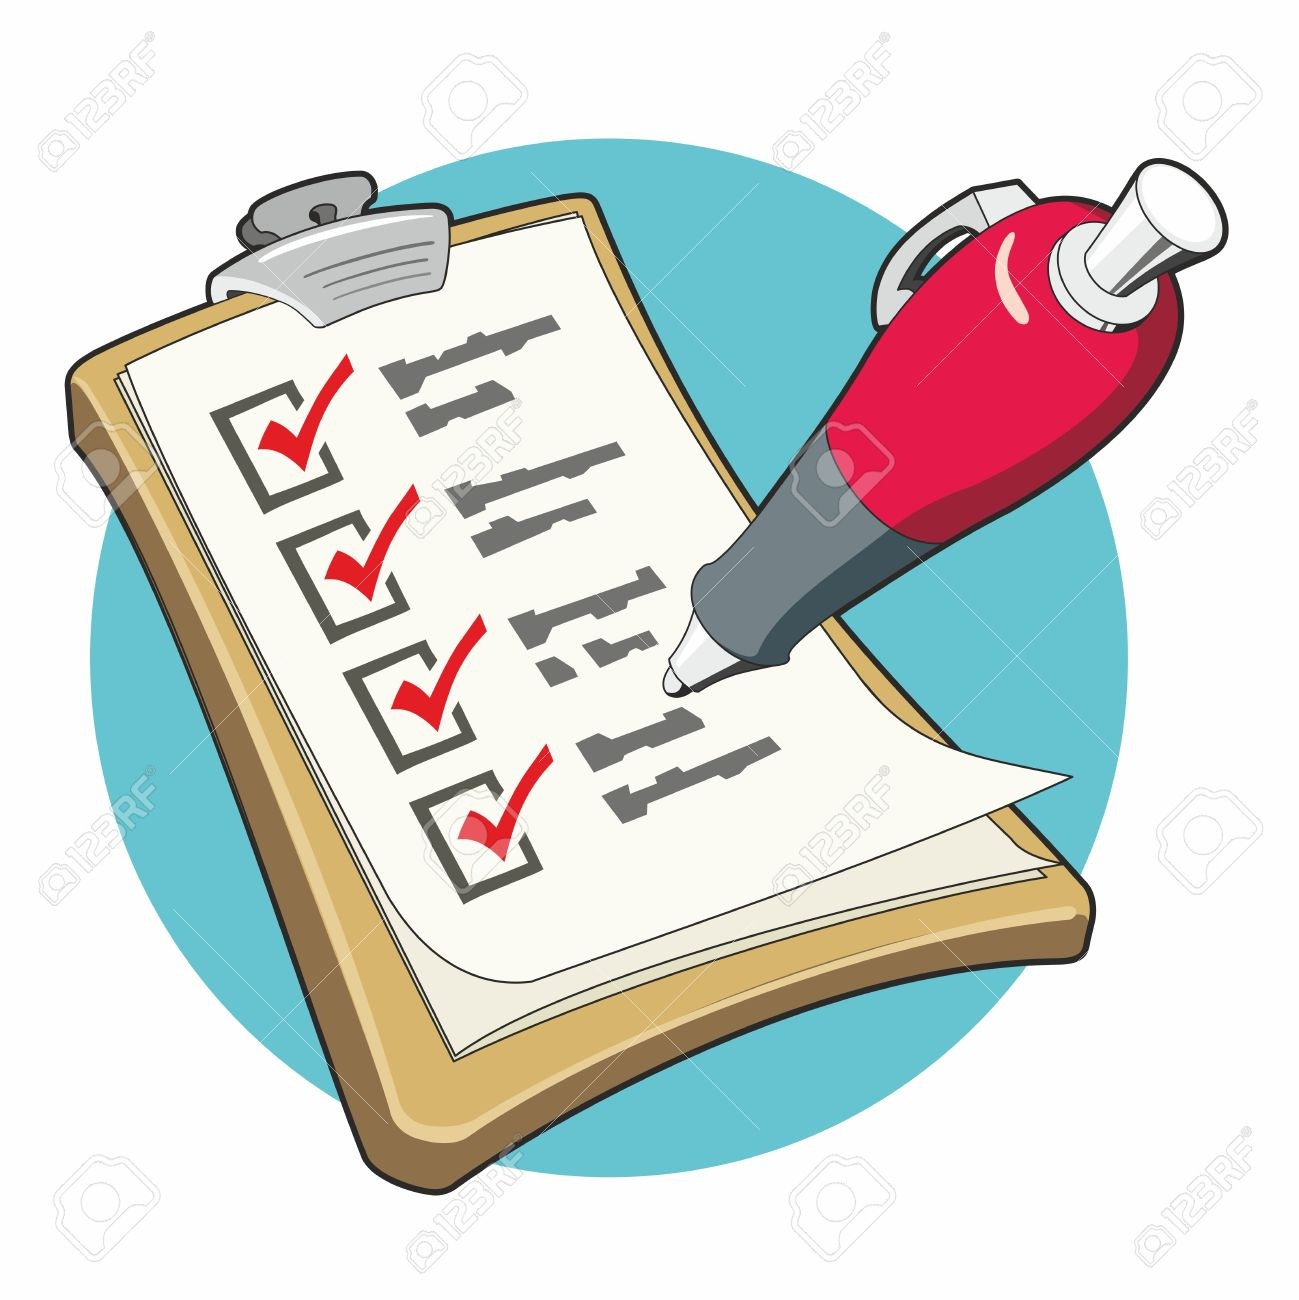 checklist with red ballpoint pen ticking the boxes on a clipboard in stylized clip art